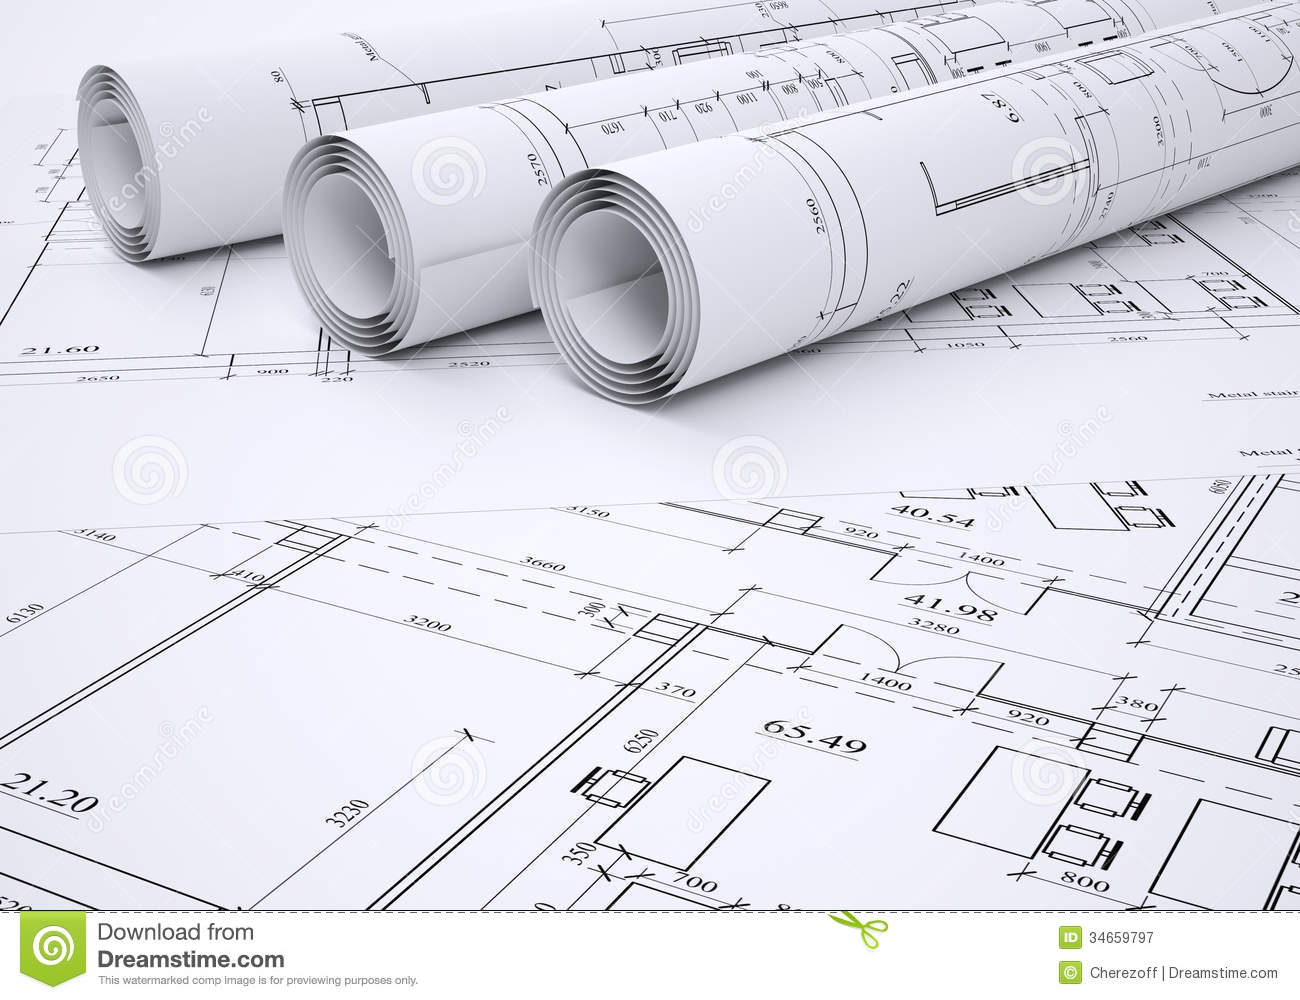 Architectural drawing rich image and wallpaper for Online architecture design